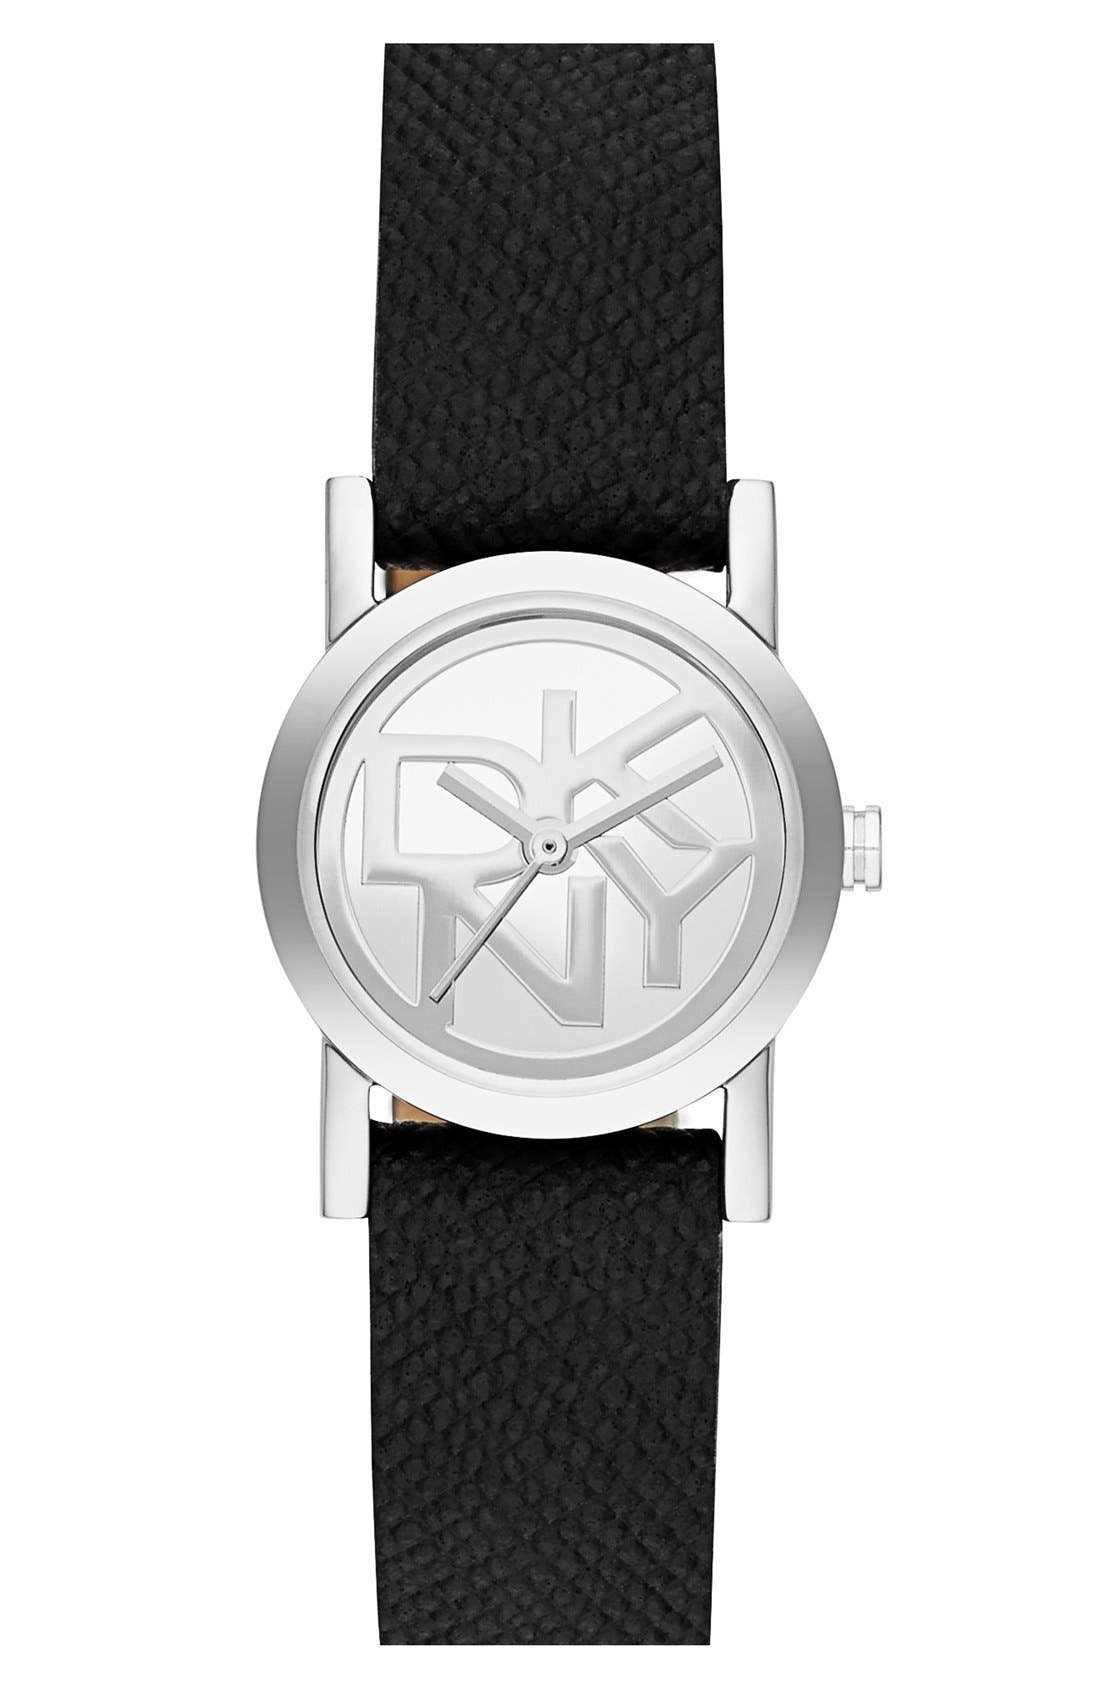 Main Image - DKNY 'Soho' Small Round Leather Strap Watch, 20mm